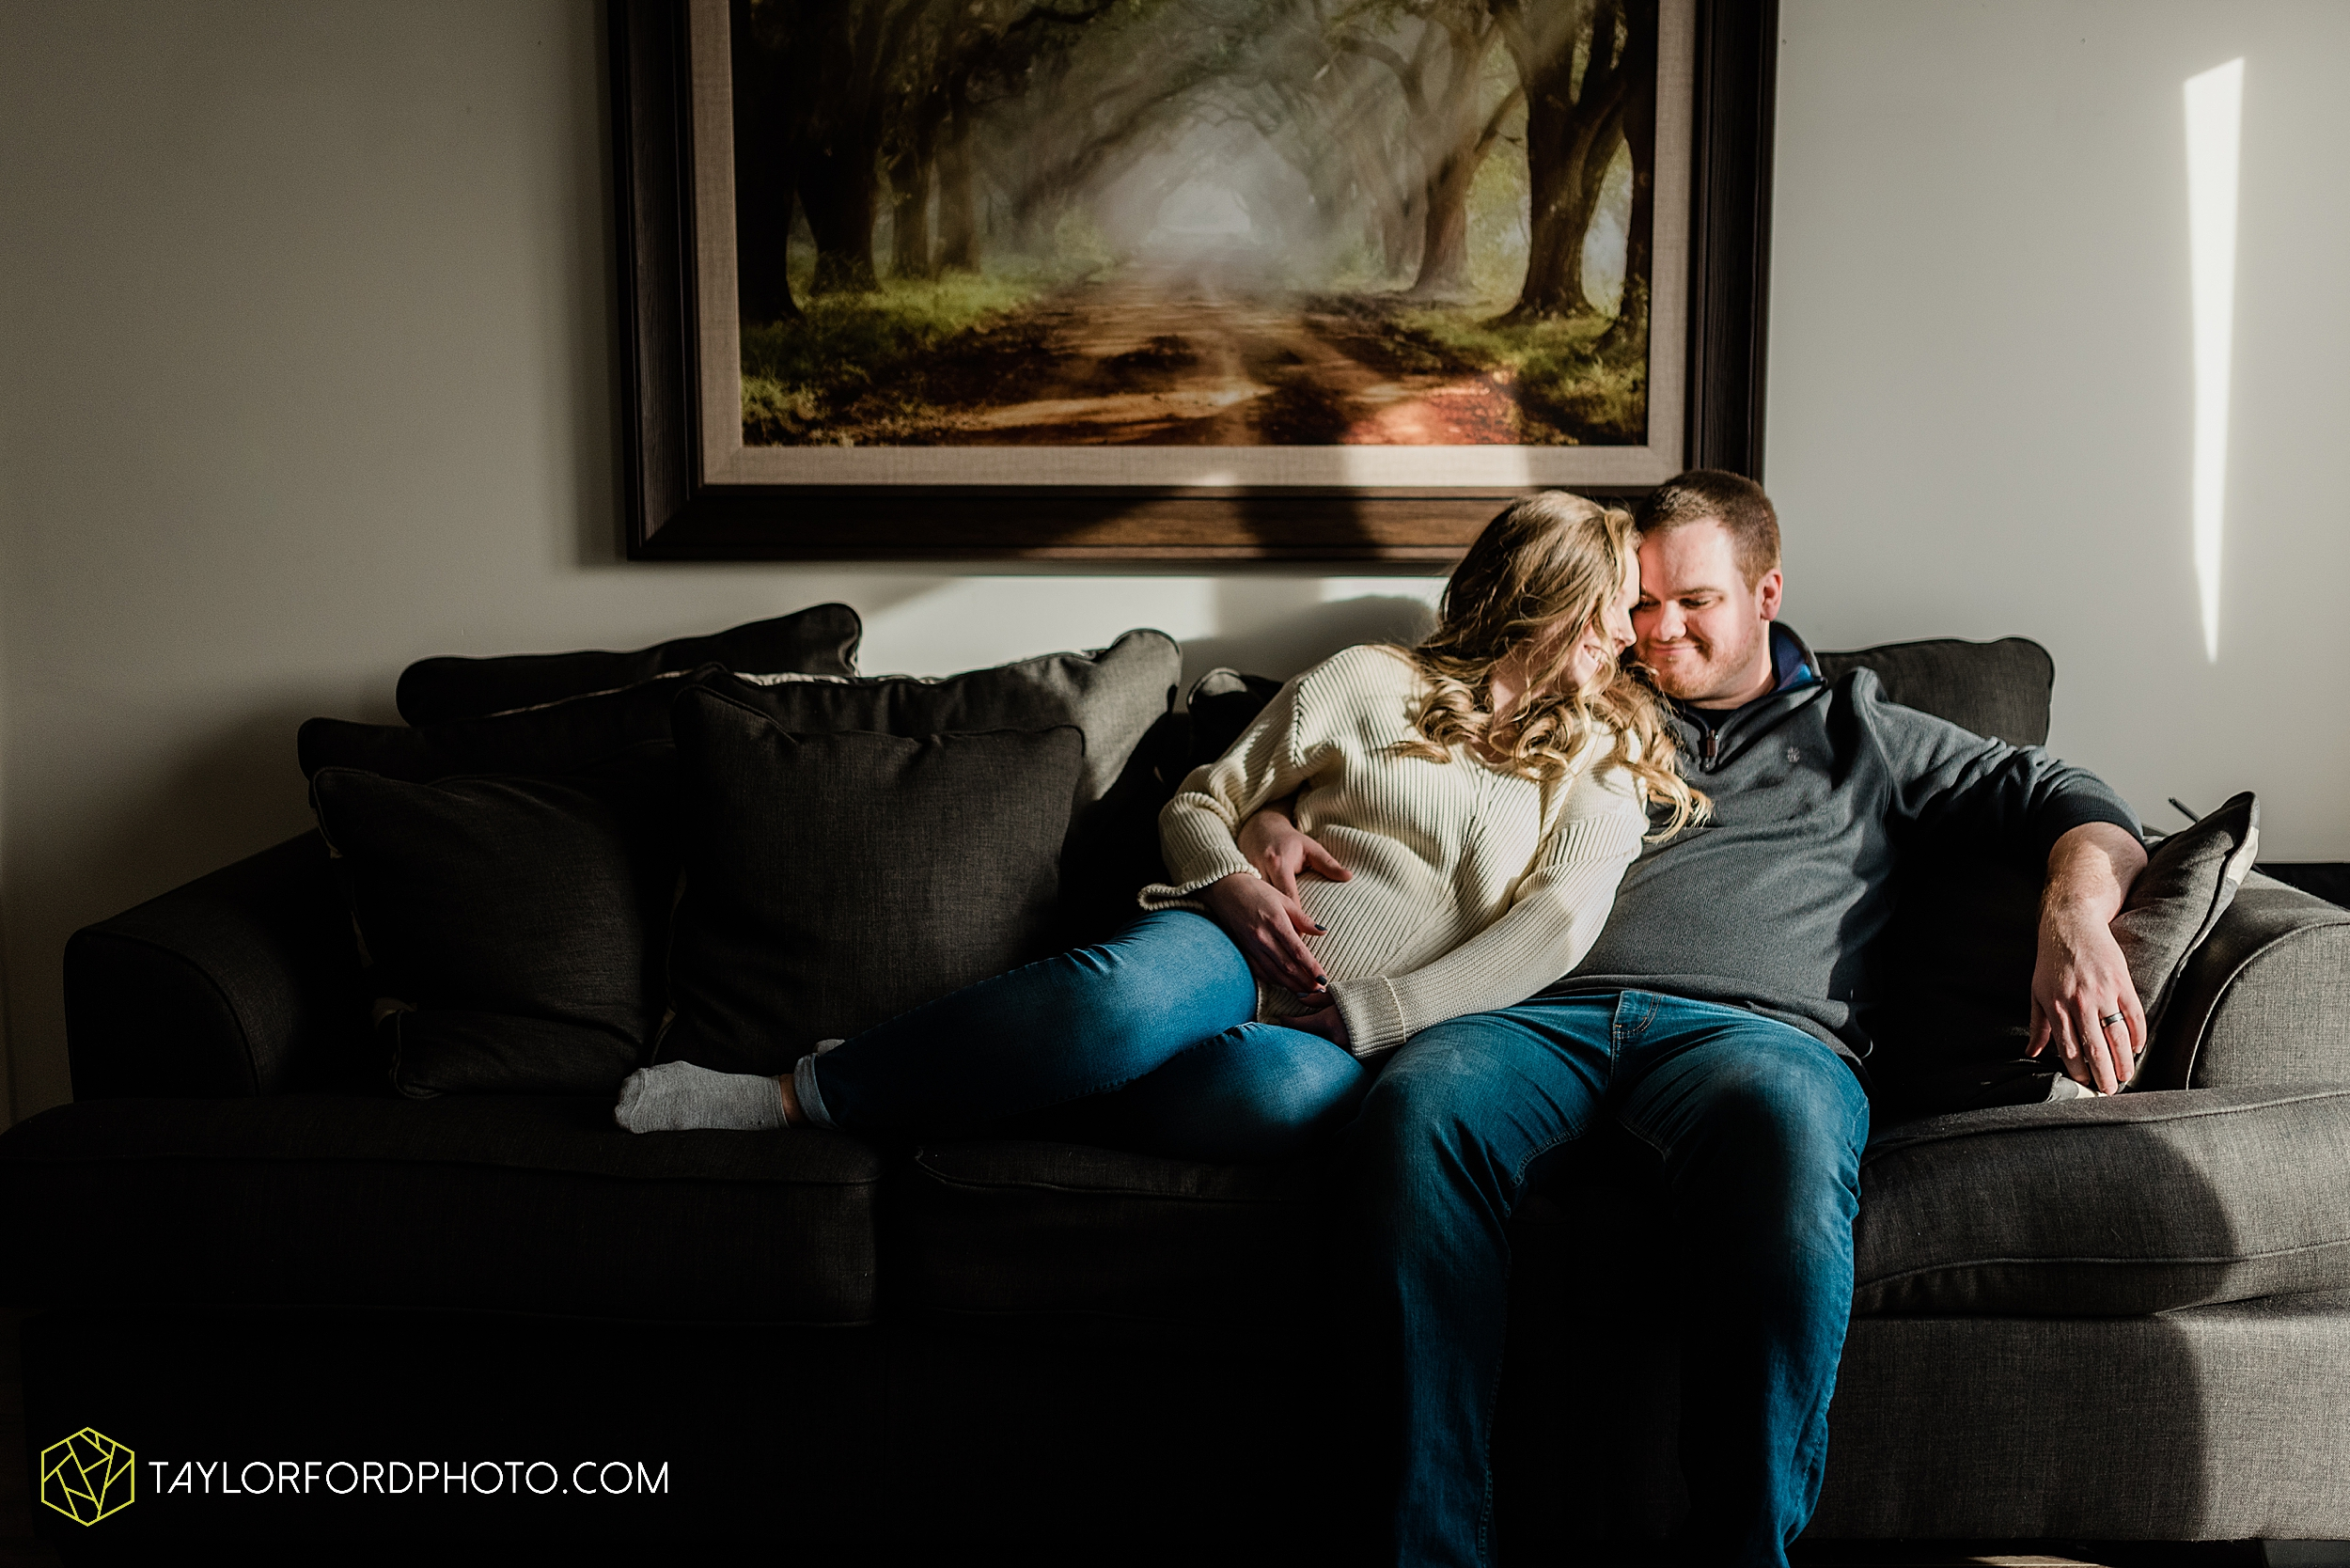 schafer-maternity-pregnant-at-home-fort-wayne-indiana-photography-taylor-ford-hirschy-photographer_2255.jpg